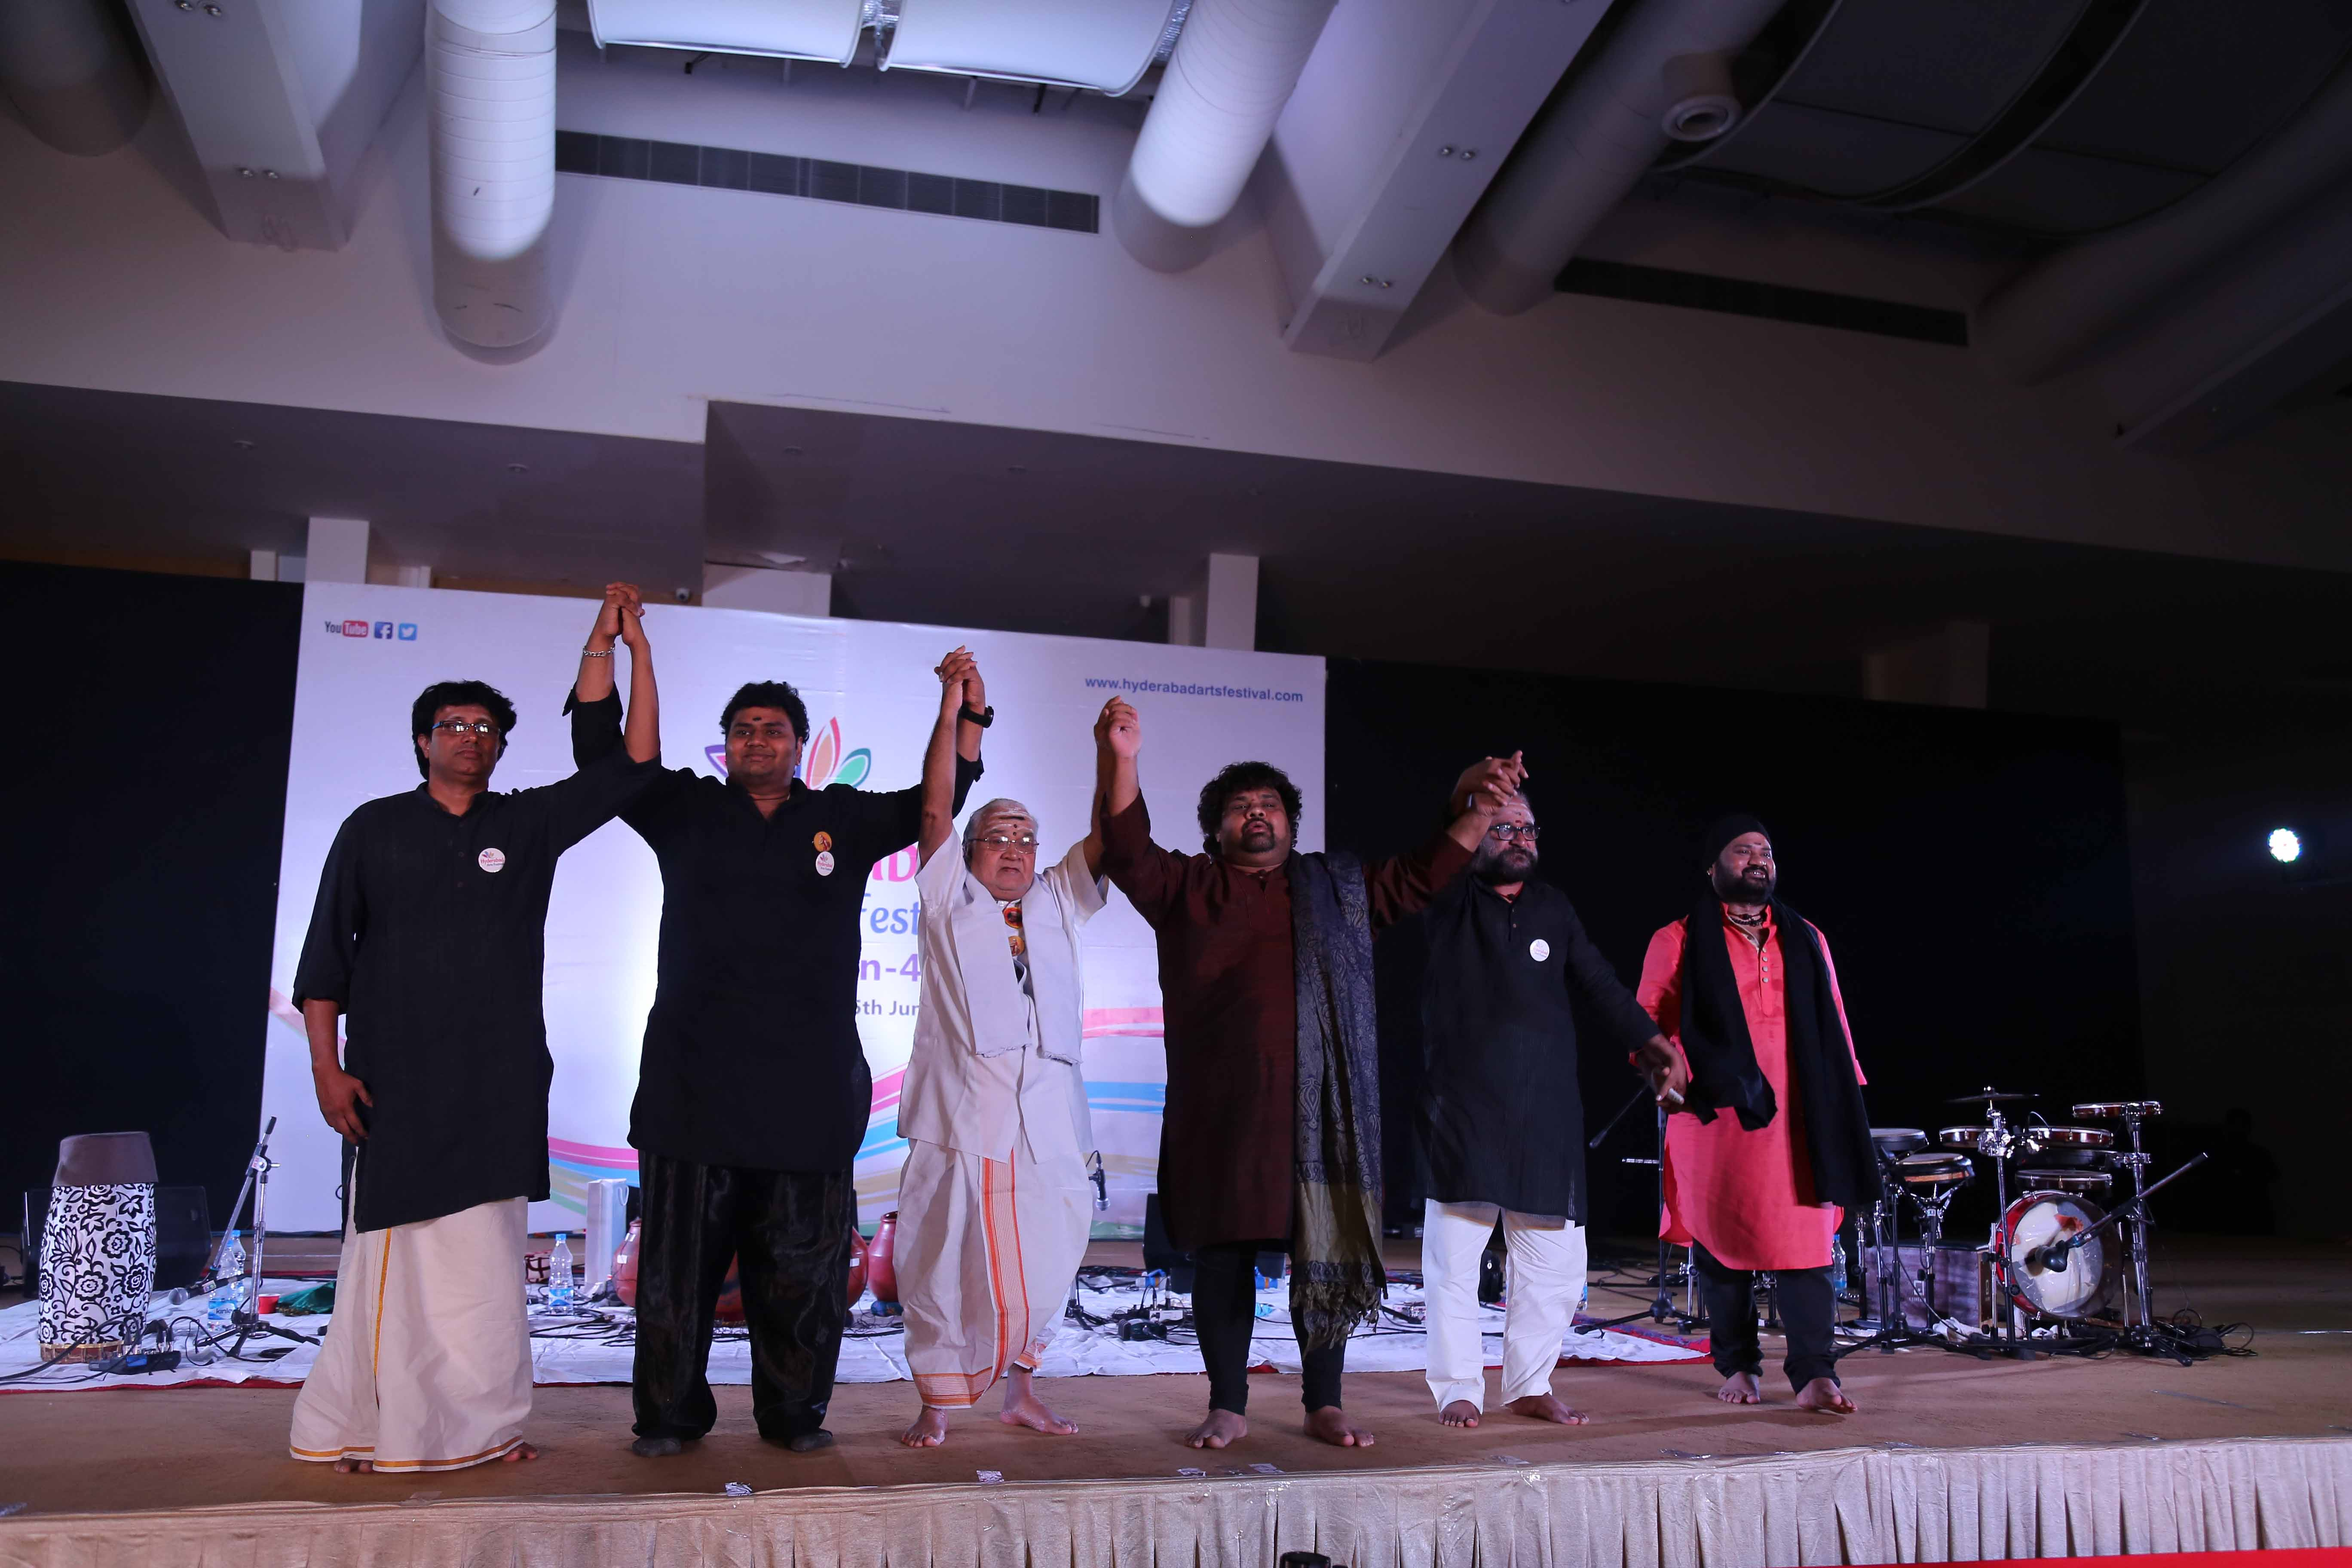 Saptakshara Performance by Ghatam master  Vikku Vinyakaram held Vikku Vinayakram and performance of three generations of artists of same family performing together from a single platform was unique and a huge hit with 1000 plus audience at Cybercity